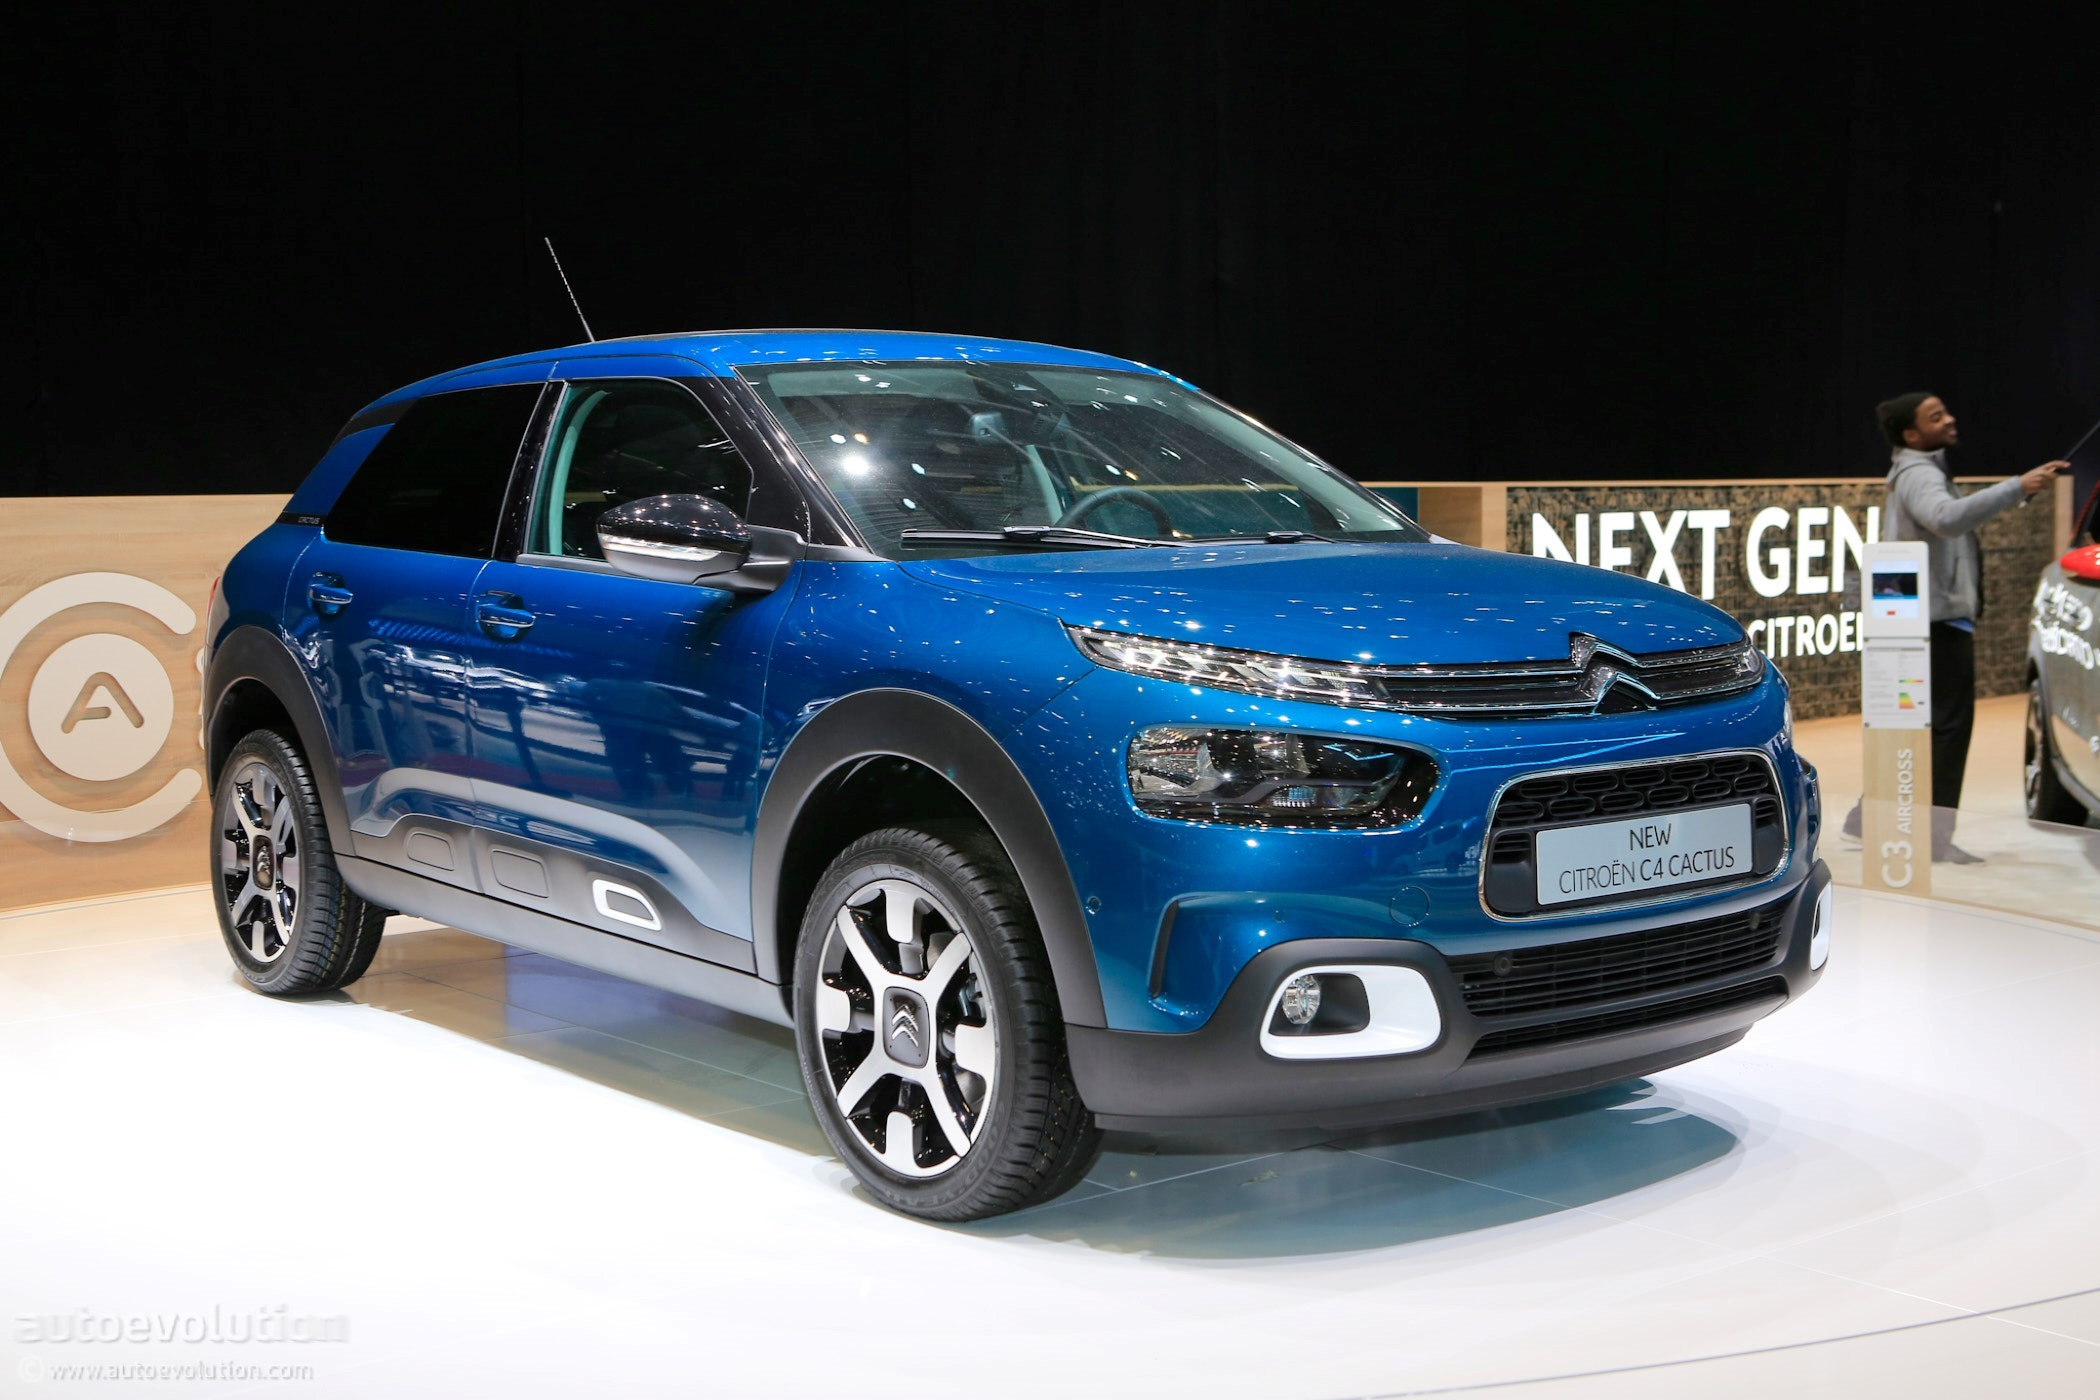 2018 citroen berlingo multispace joins facelifted c4 cactus on stage in geneva autoevolution. Black Bedroom Furniture Sets. Home Design Ideas